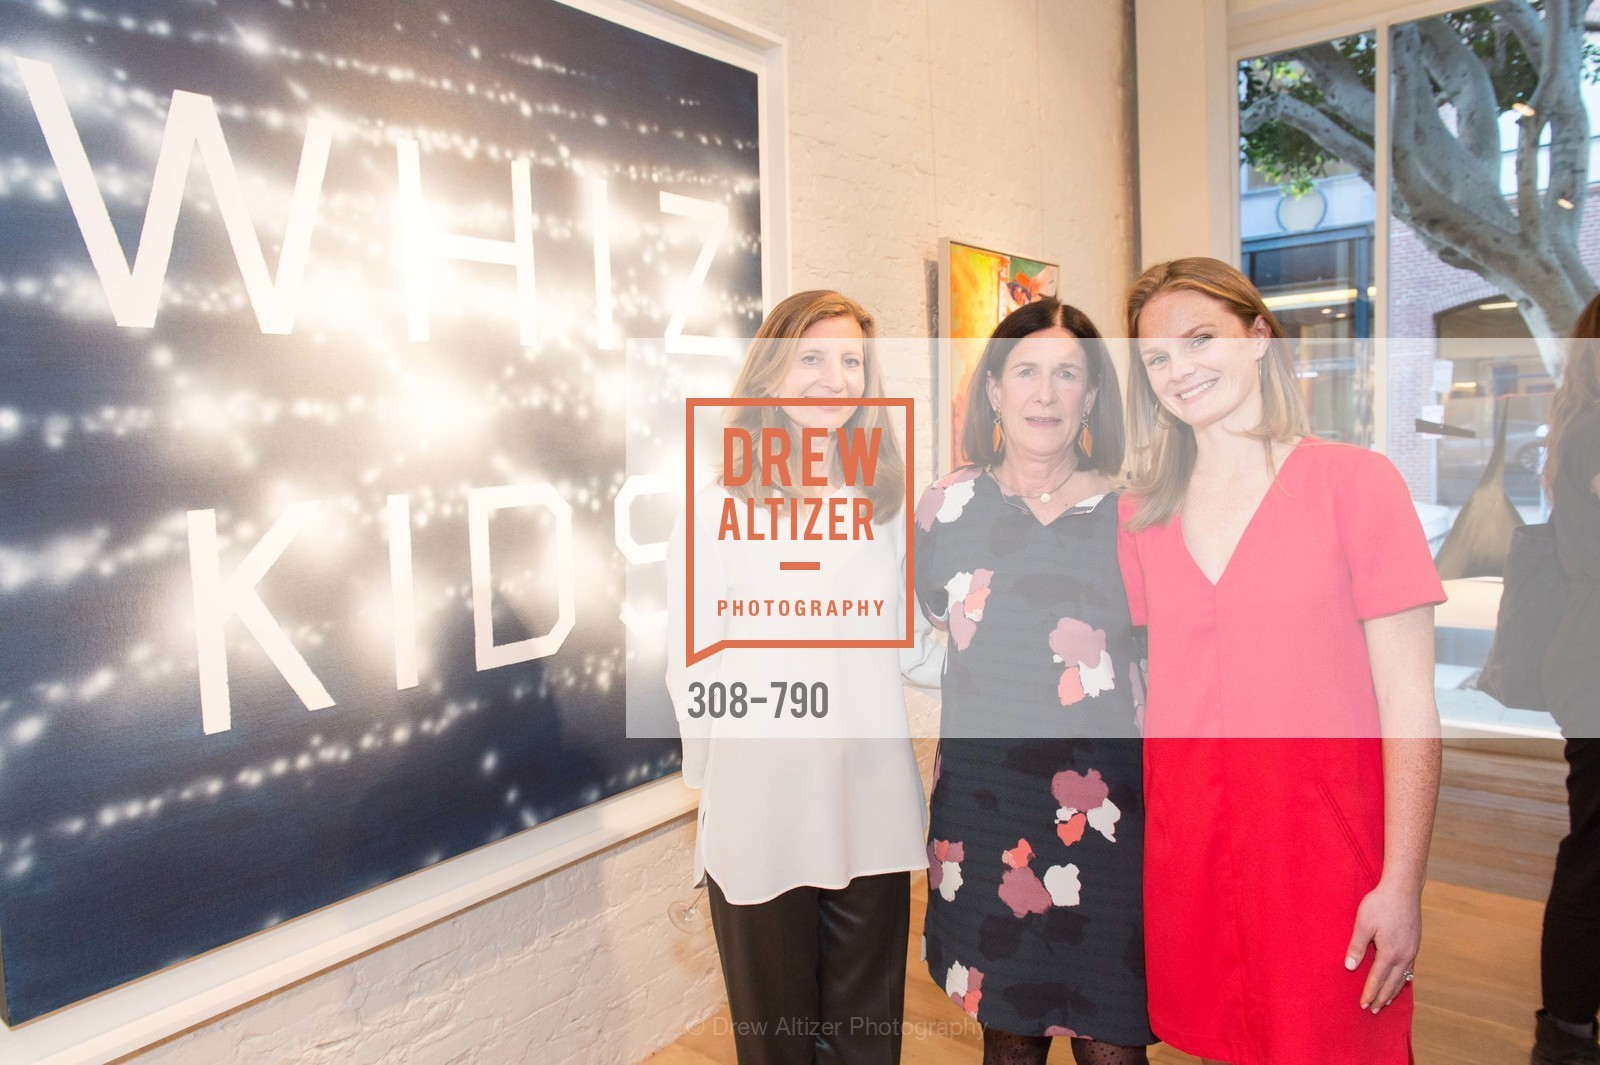 Laura Nagel, Ellanor Notides, Charlie Adamski, Post War and Contemporary Preview at HEDGE GALLERY, US, April 15th, 2015,Drew Altizer, Drew Altizer Photography, full-service agency, private events, San Francisco photographer, photographer california